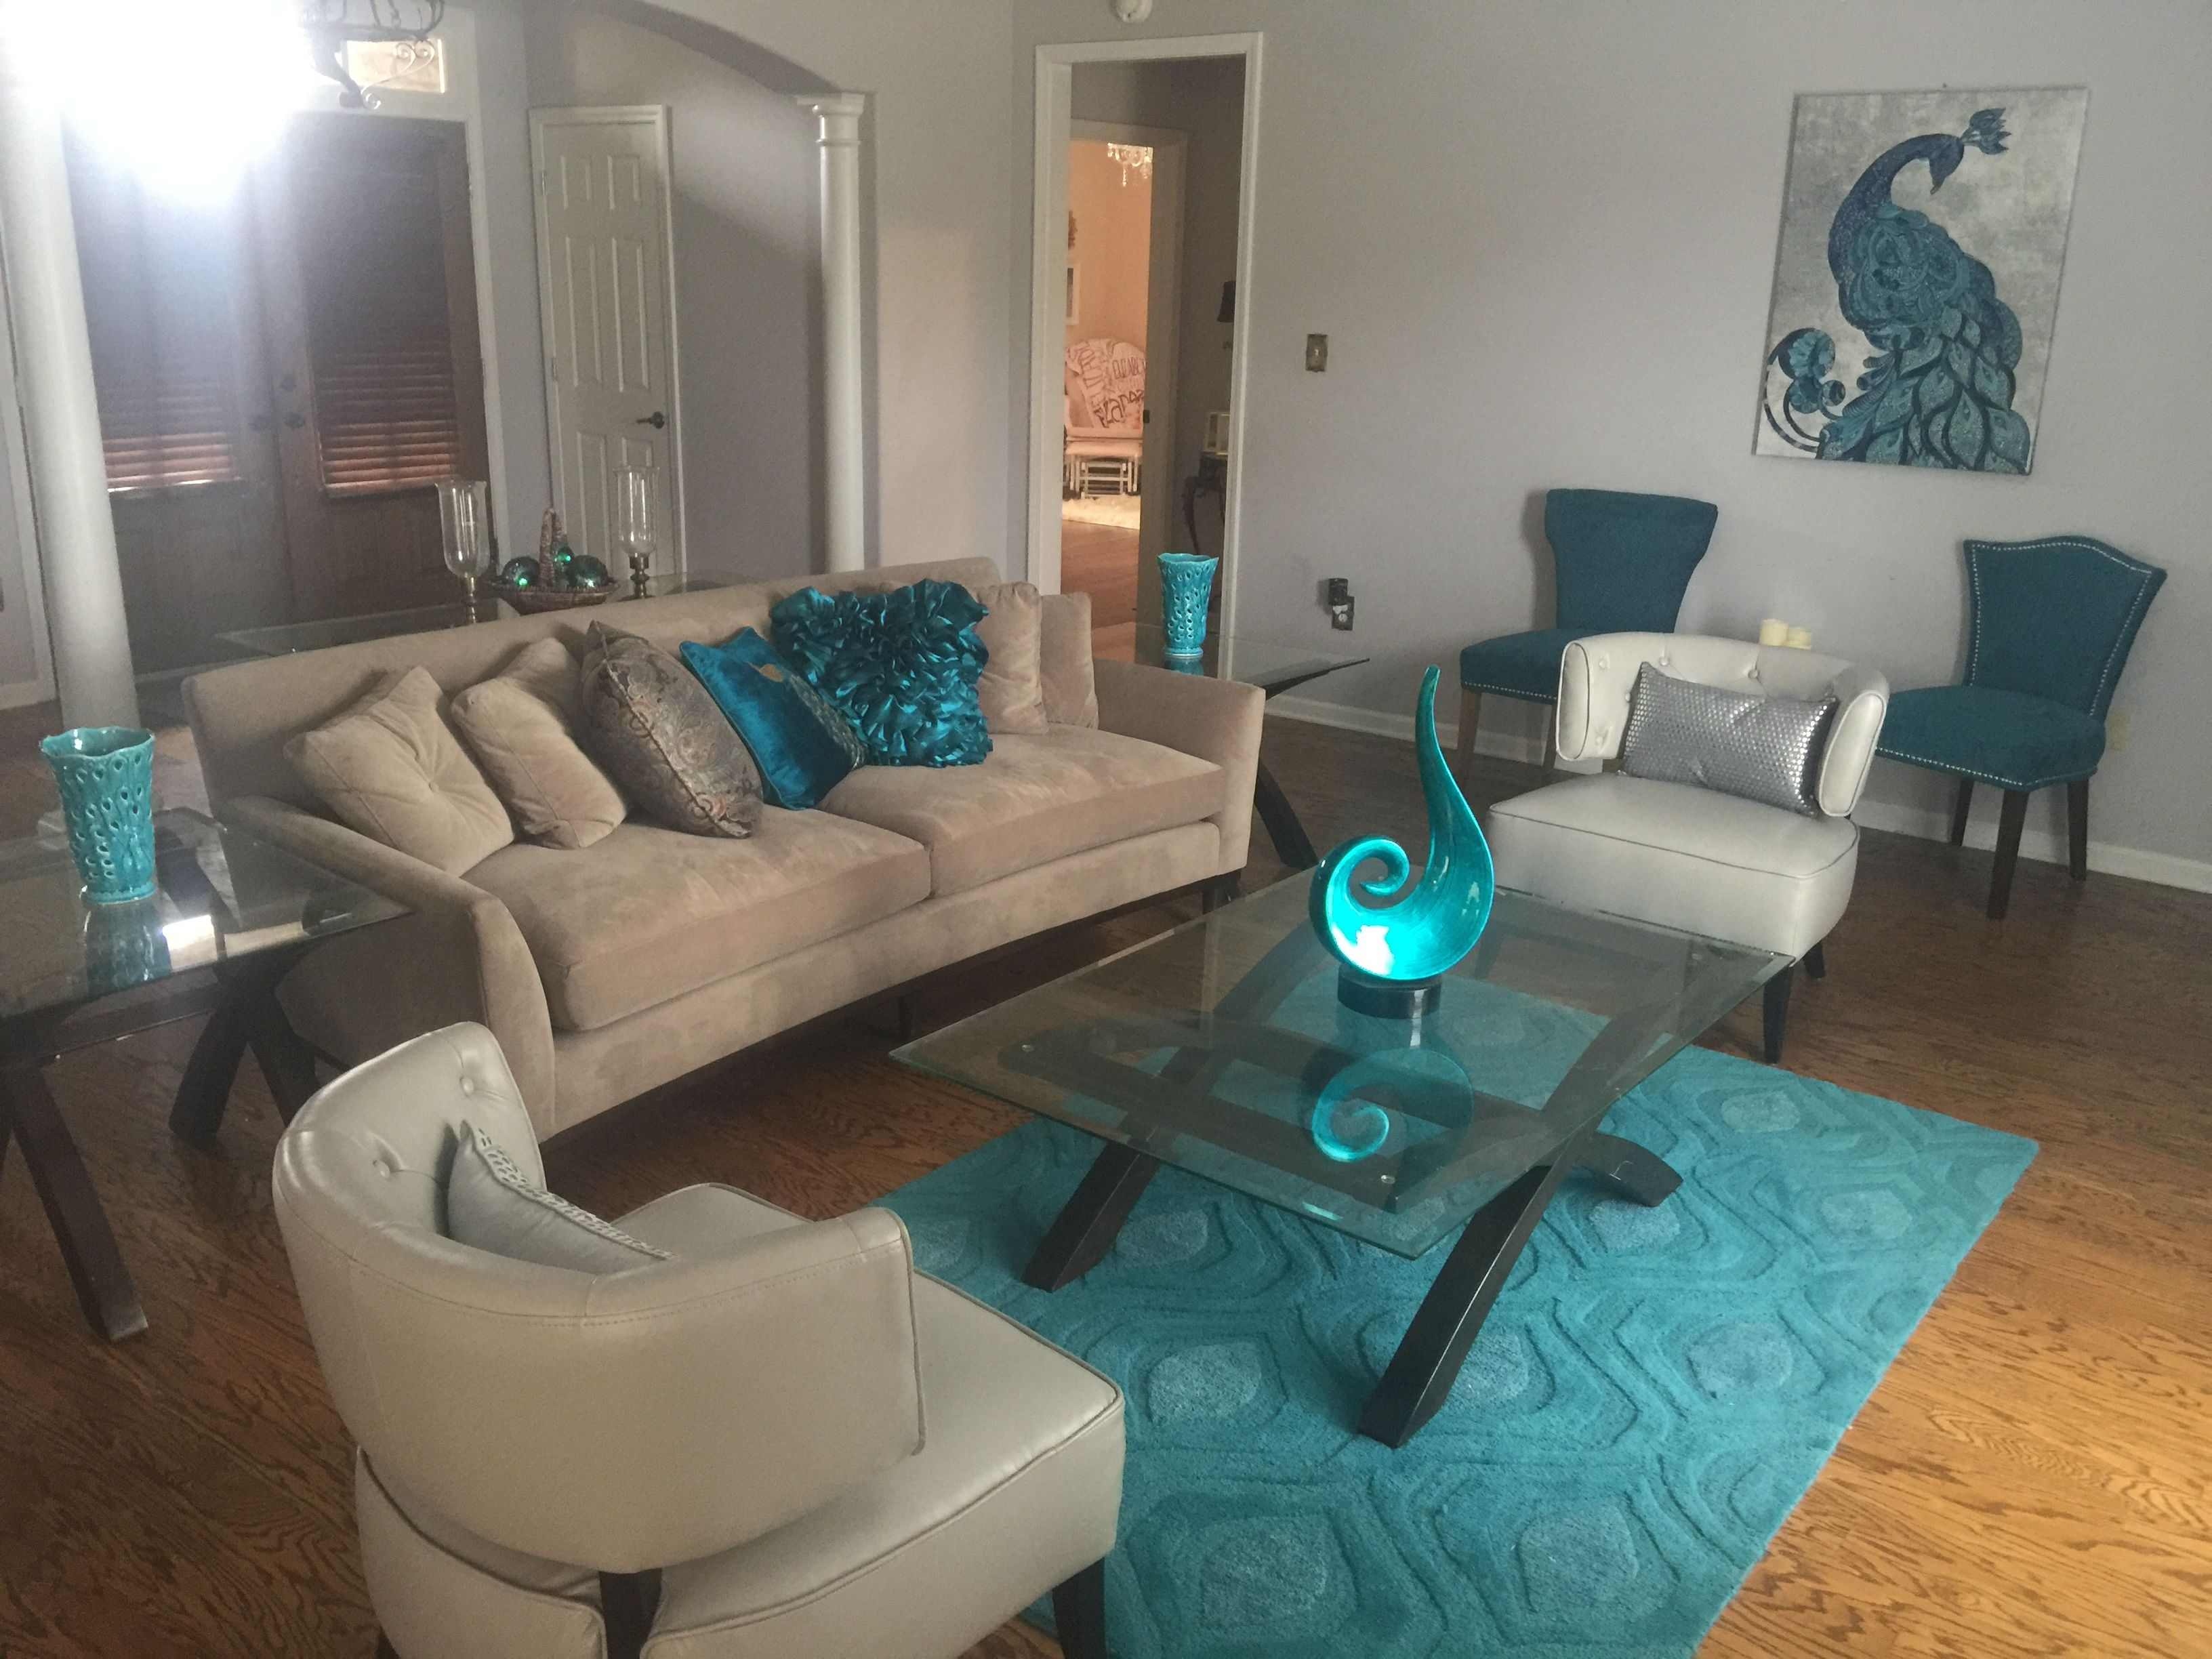 Turquoise teal peacock contemporary modern living room Haverty s